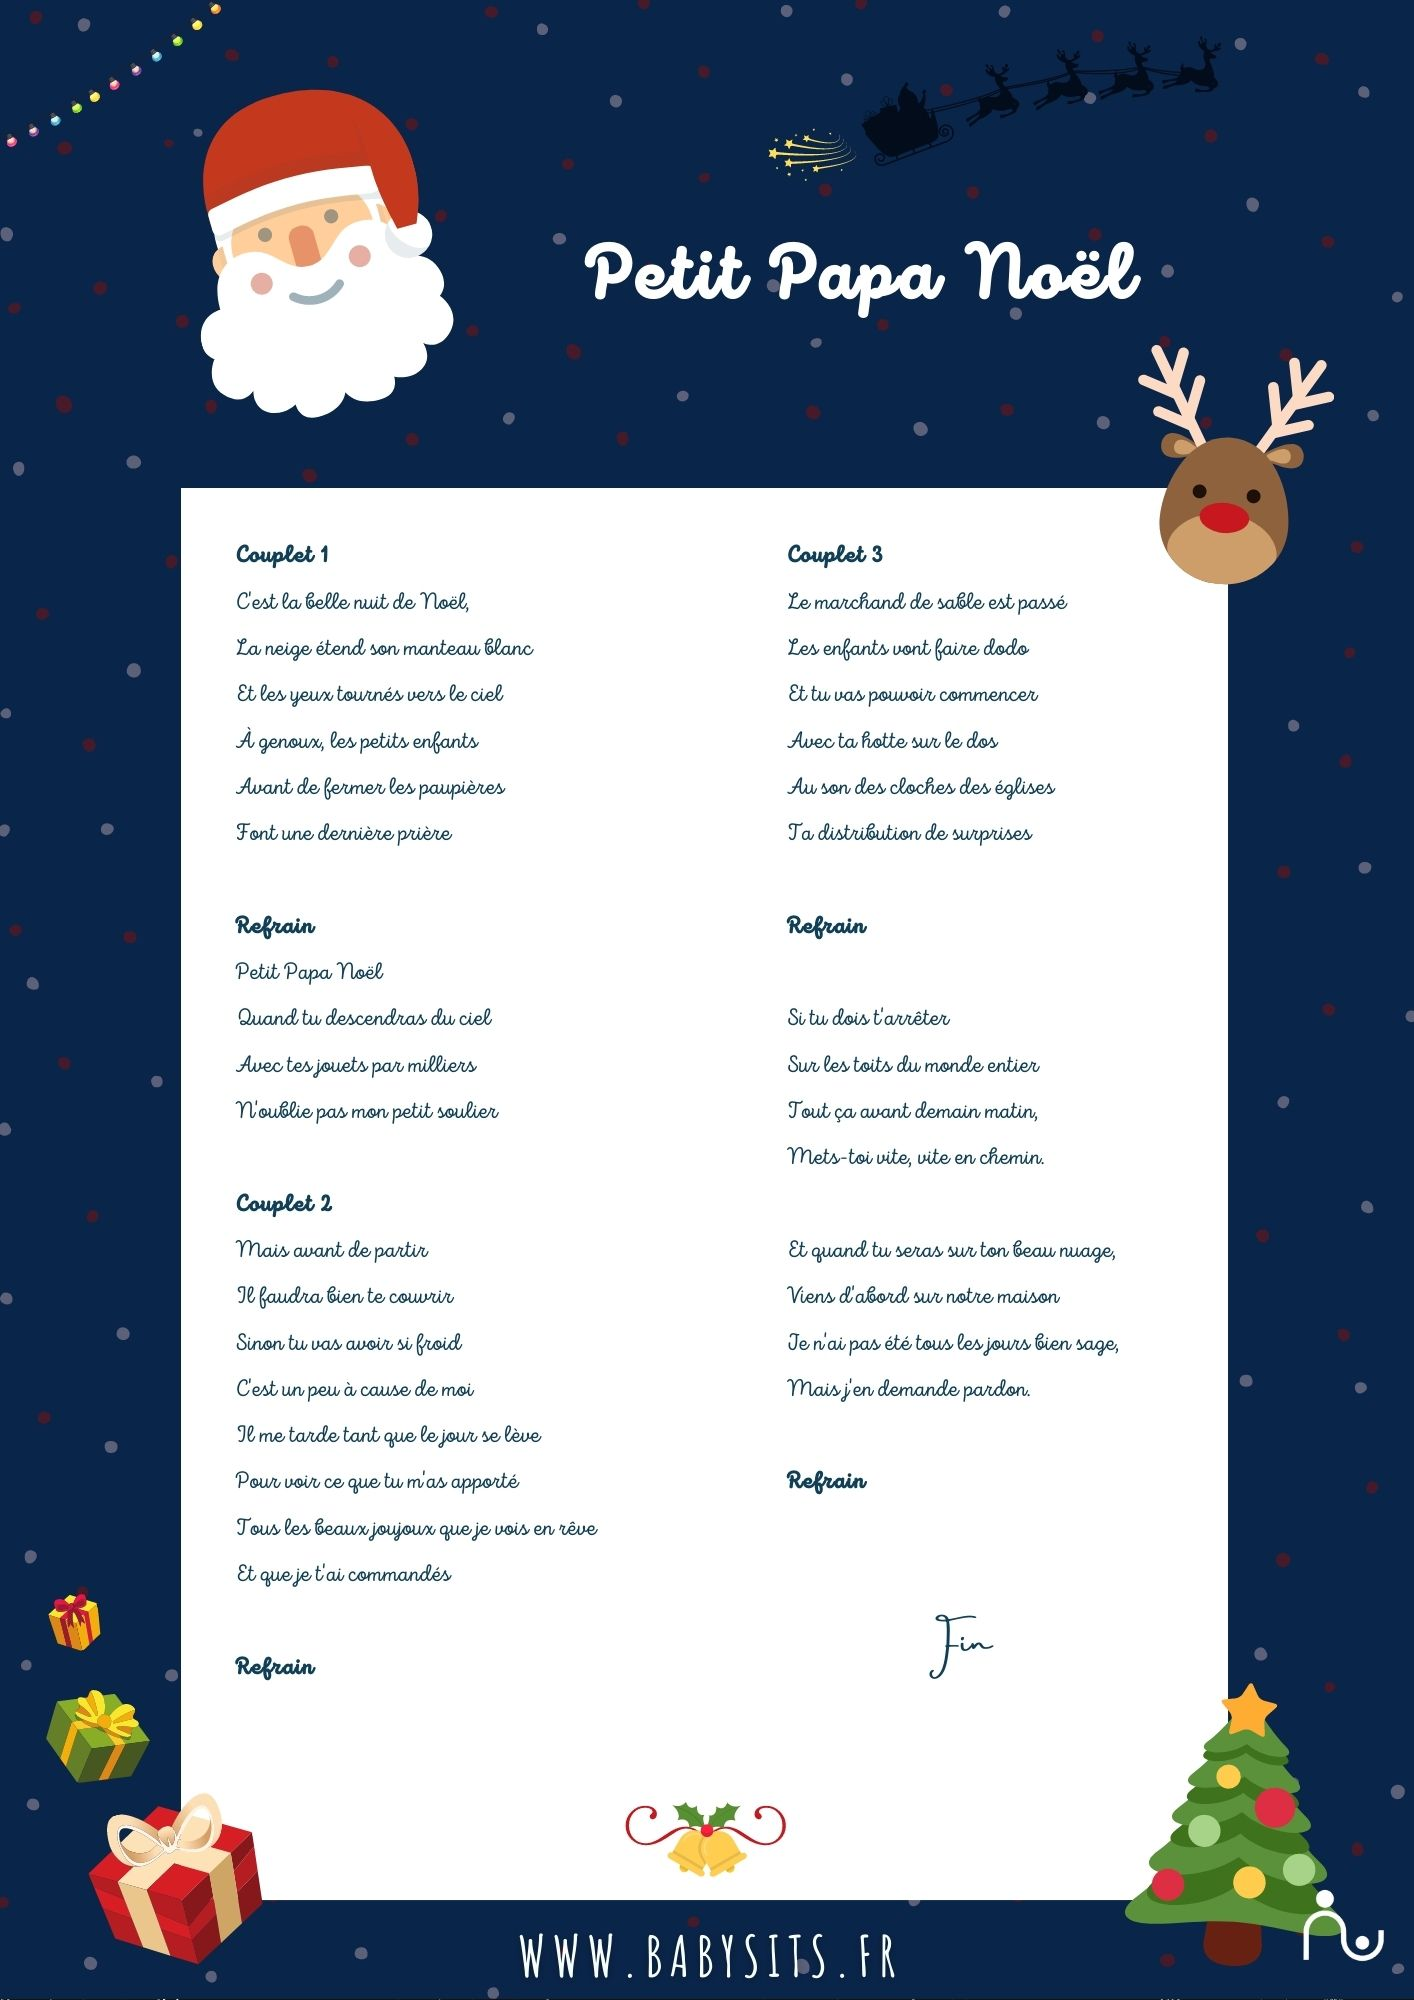 Chanson Petit Papa Noël Paroles